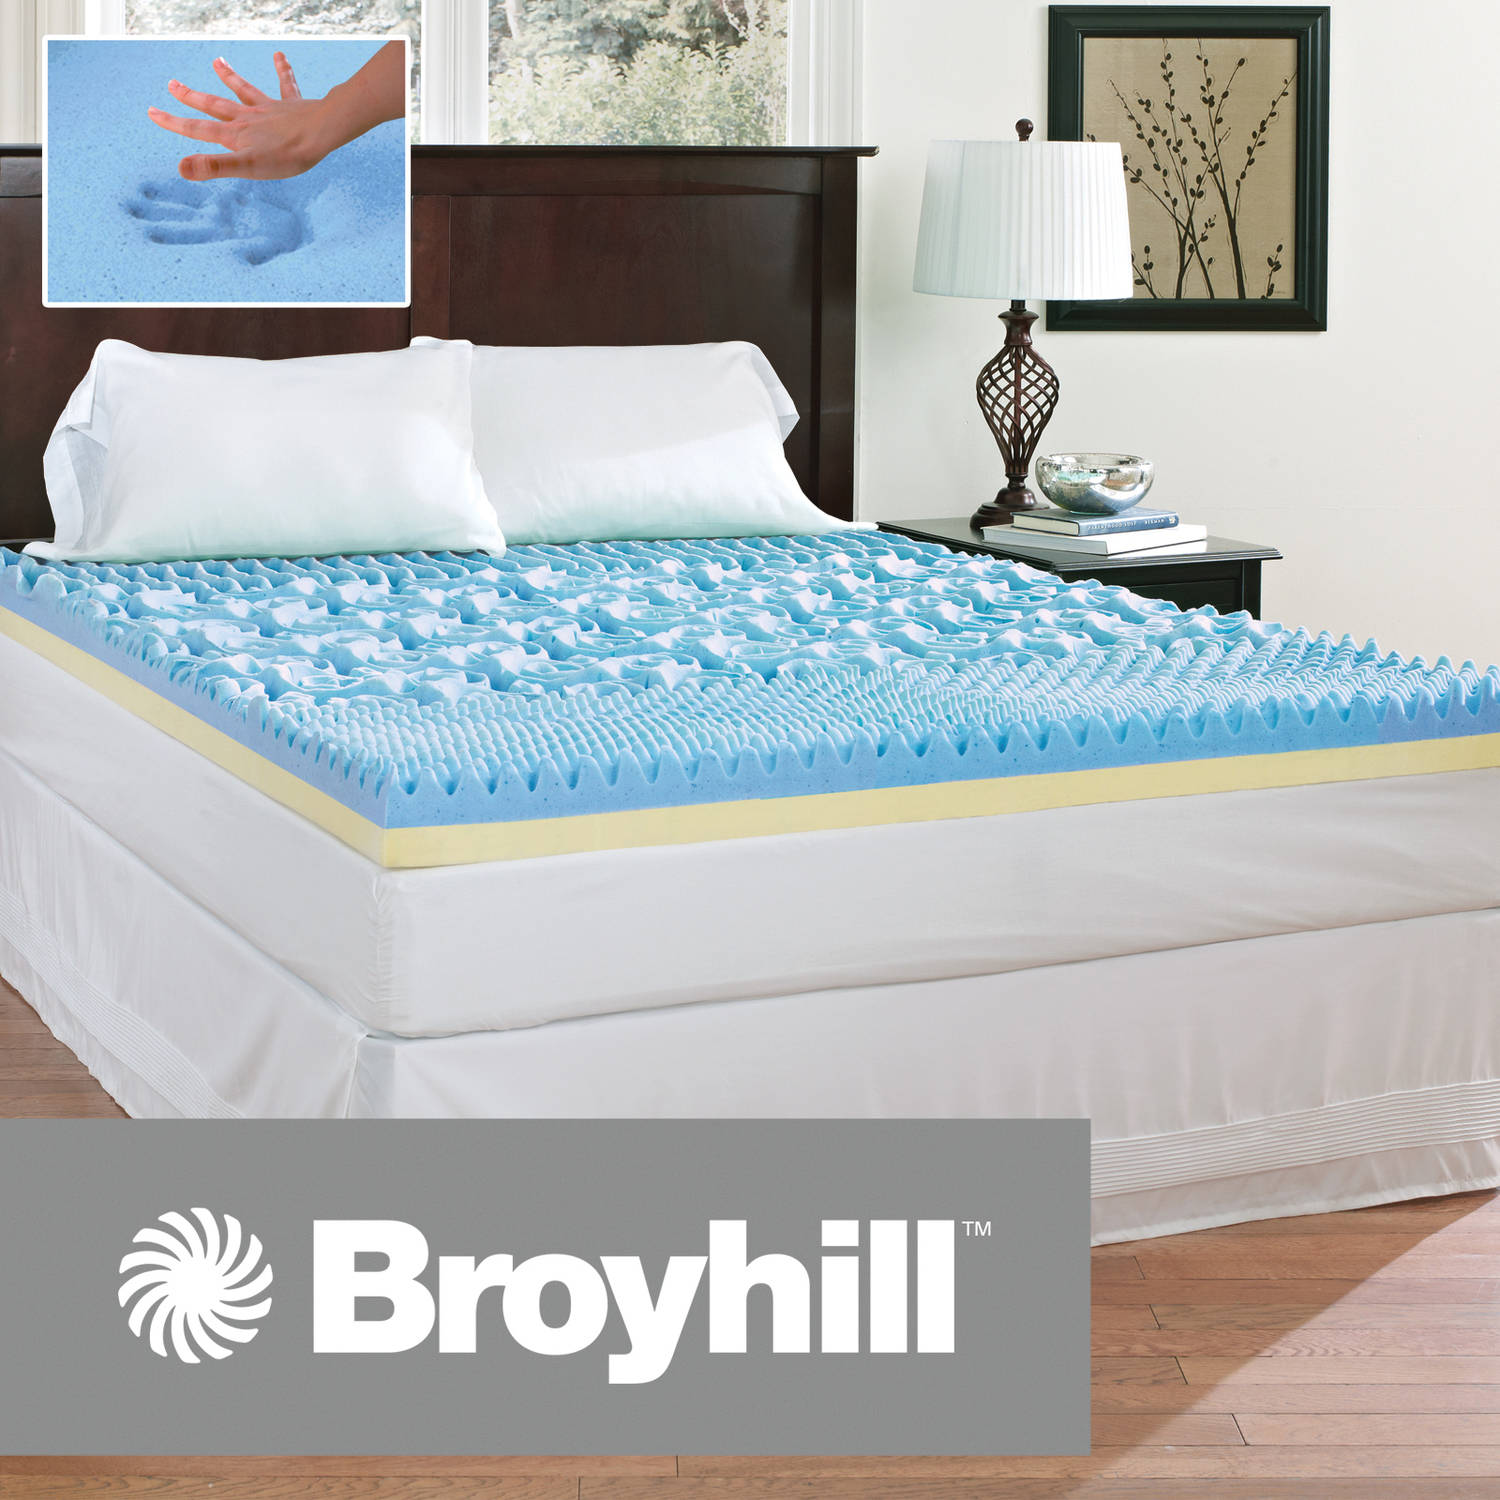 Extra Firm Mattress Topper Broyhill Comfort Temp 4